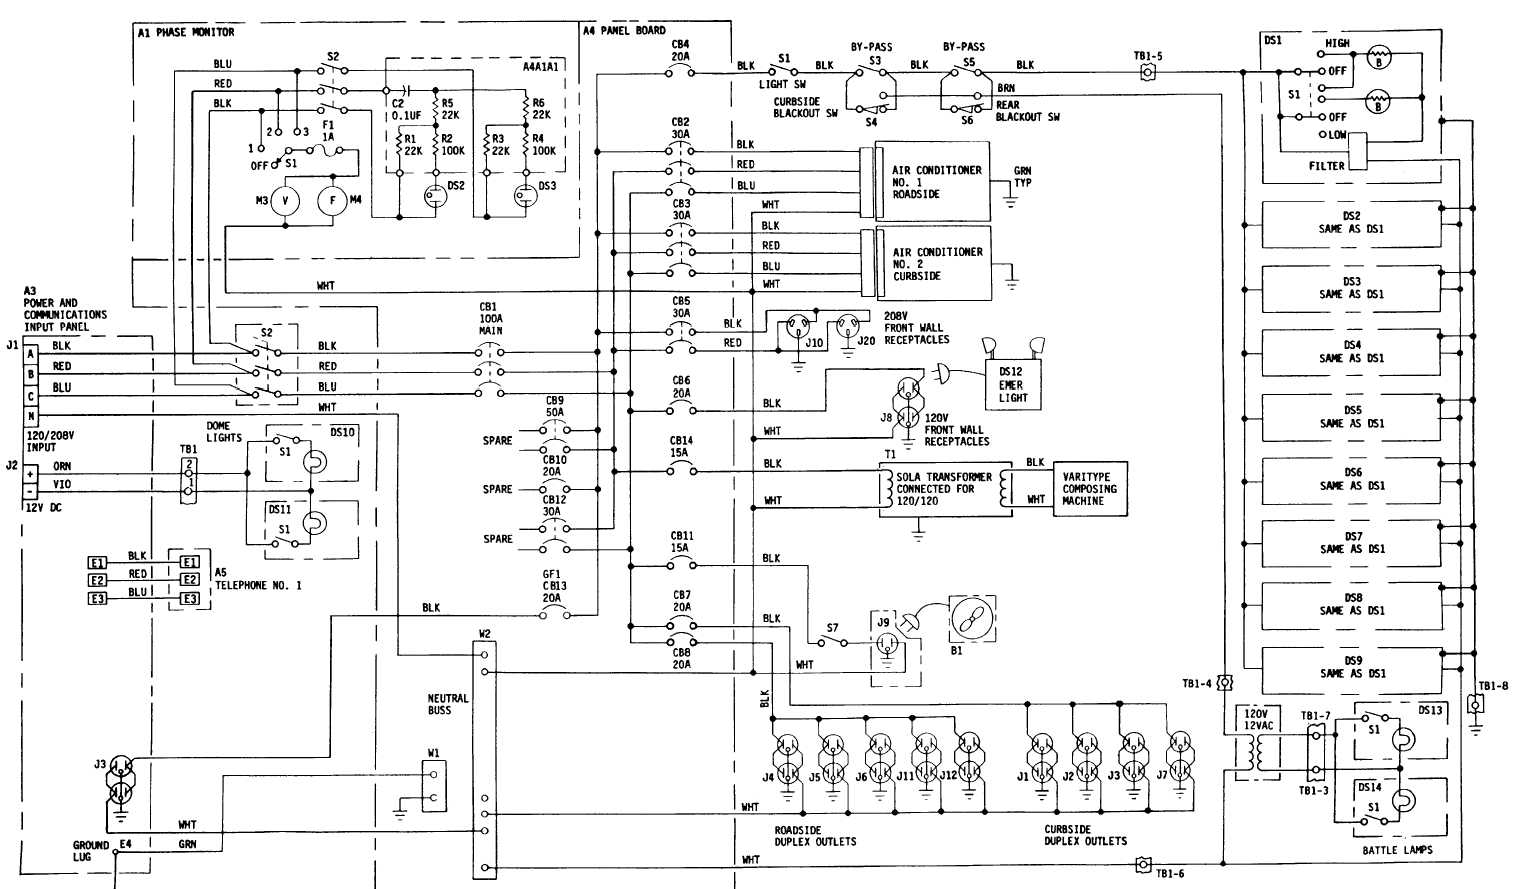 Fo 7 Drafting Support Section Electrical Schematic